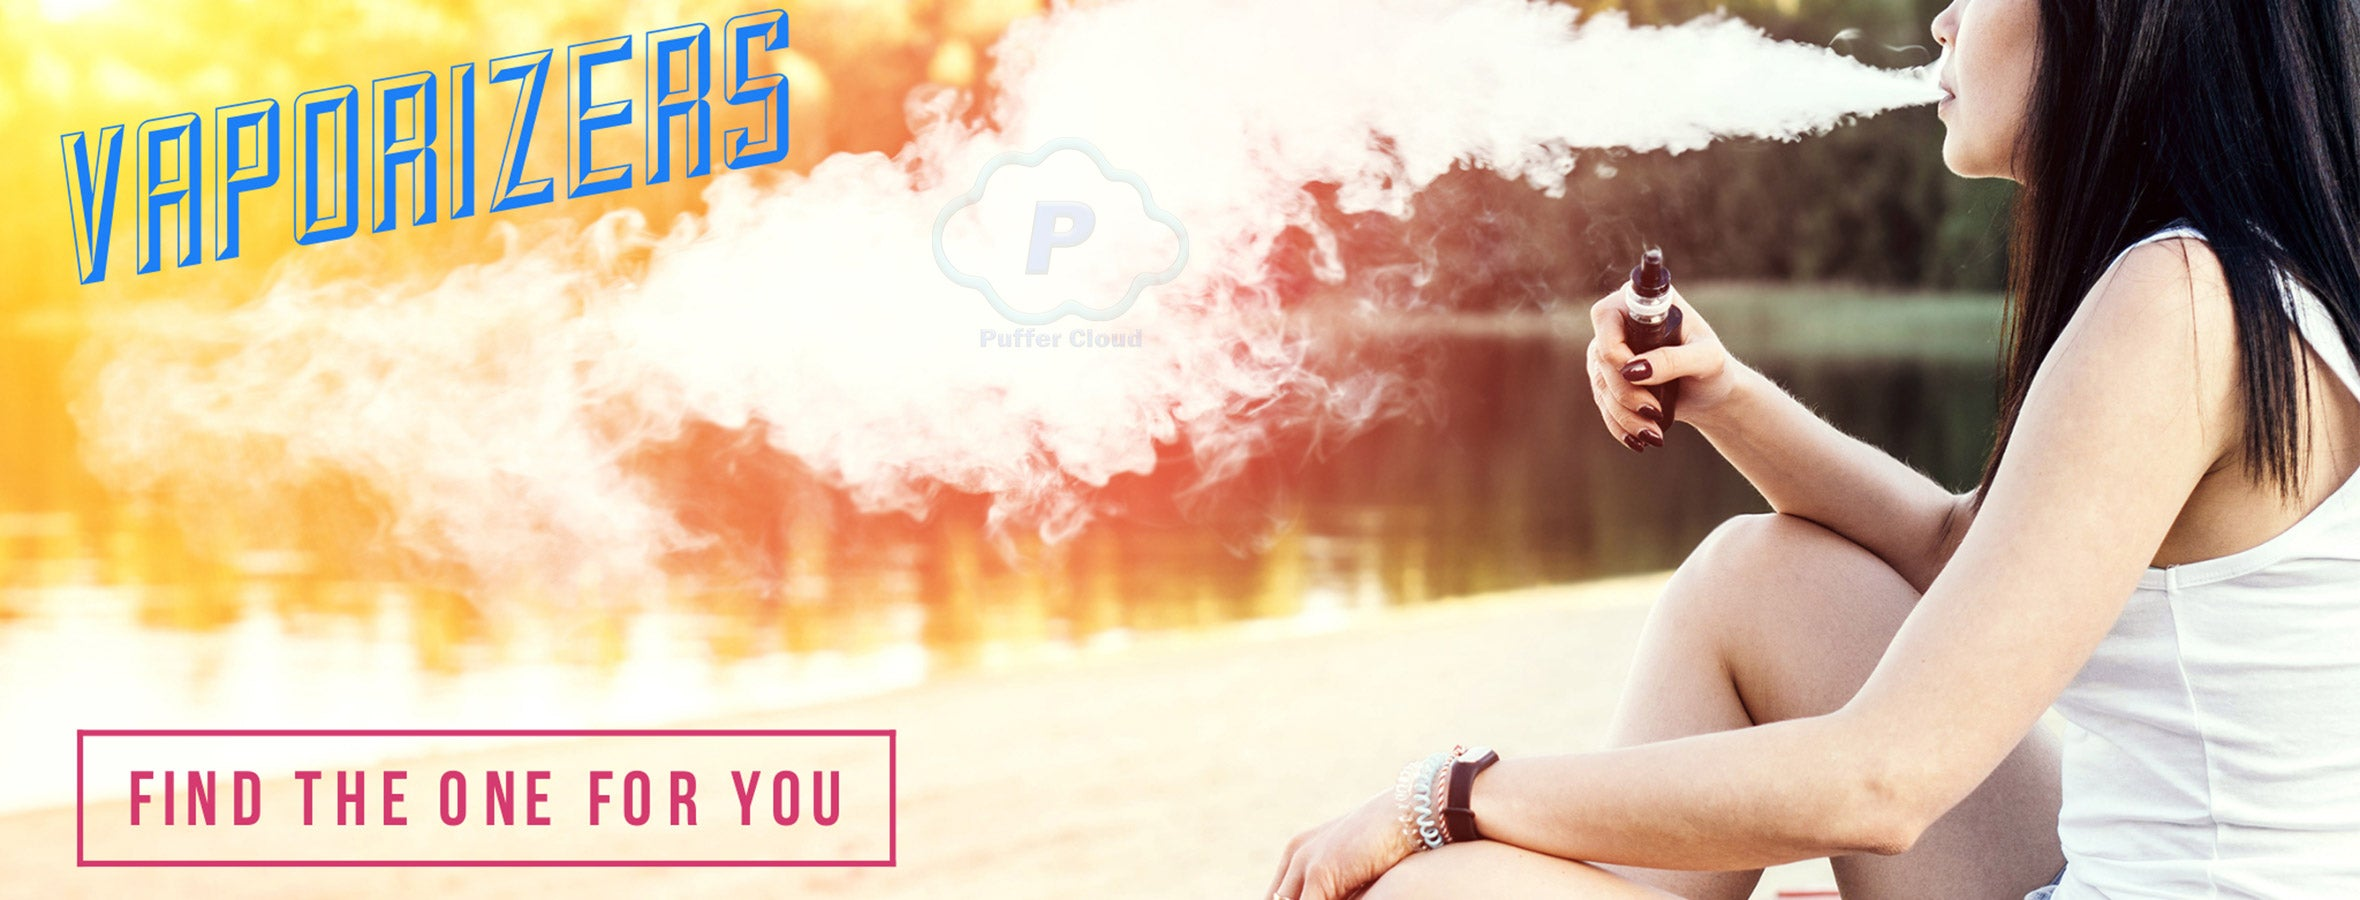 Find The Right Vaporizer Or E-Cigarette For You